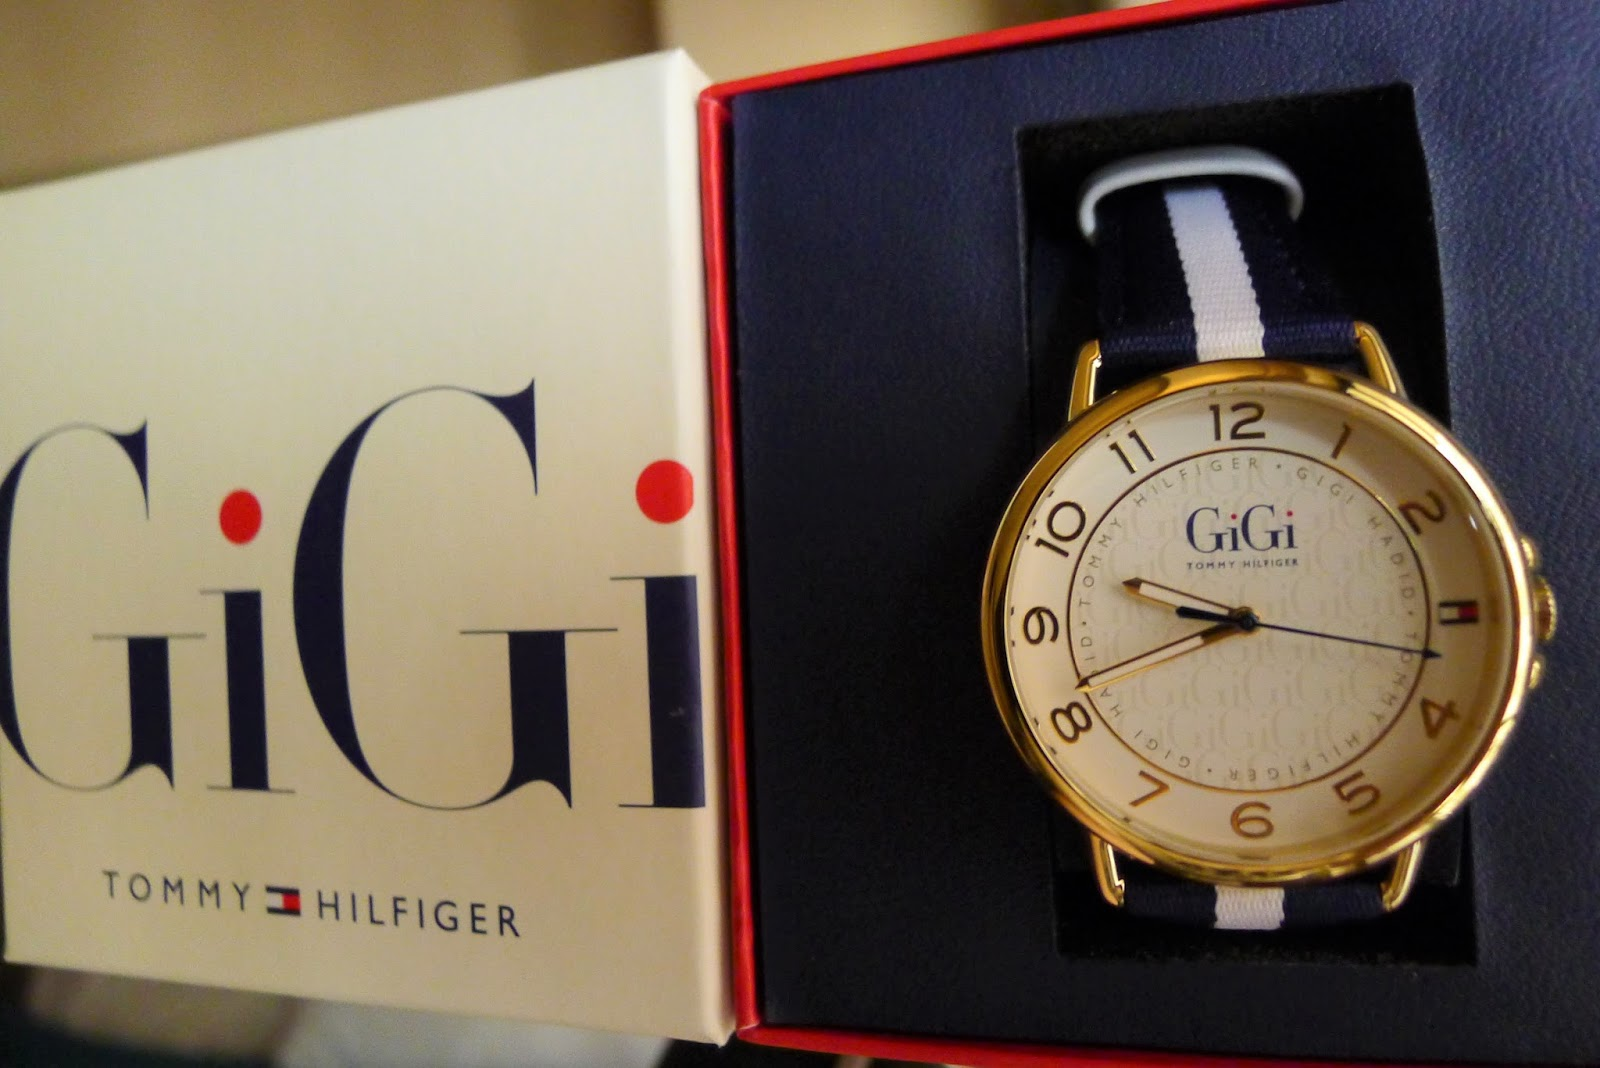 0f0c9d025ef32 Shop the Tommy Hilfiger x Gigi Hadid watch collection at Zalora and use the  special code  THxGIGI to take 15% off the price!